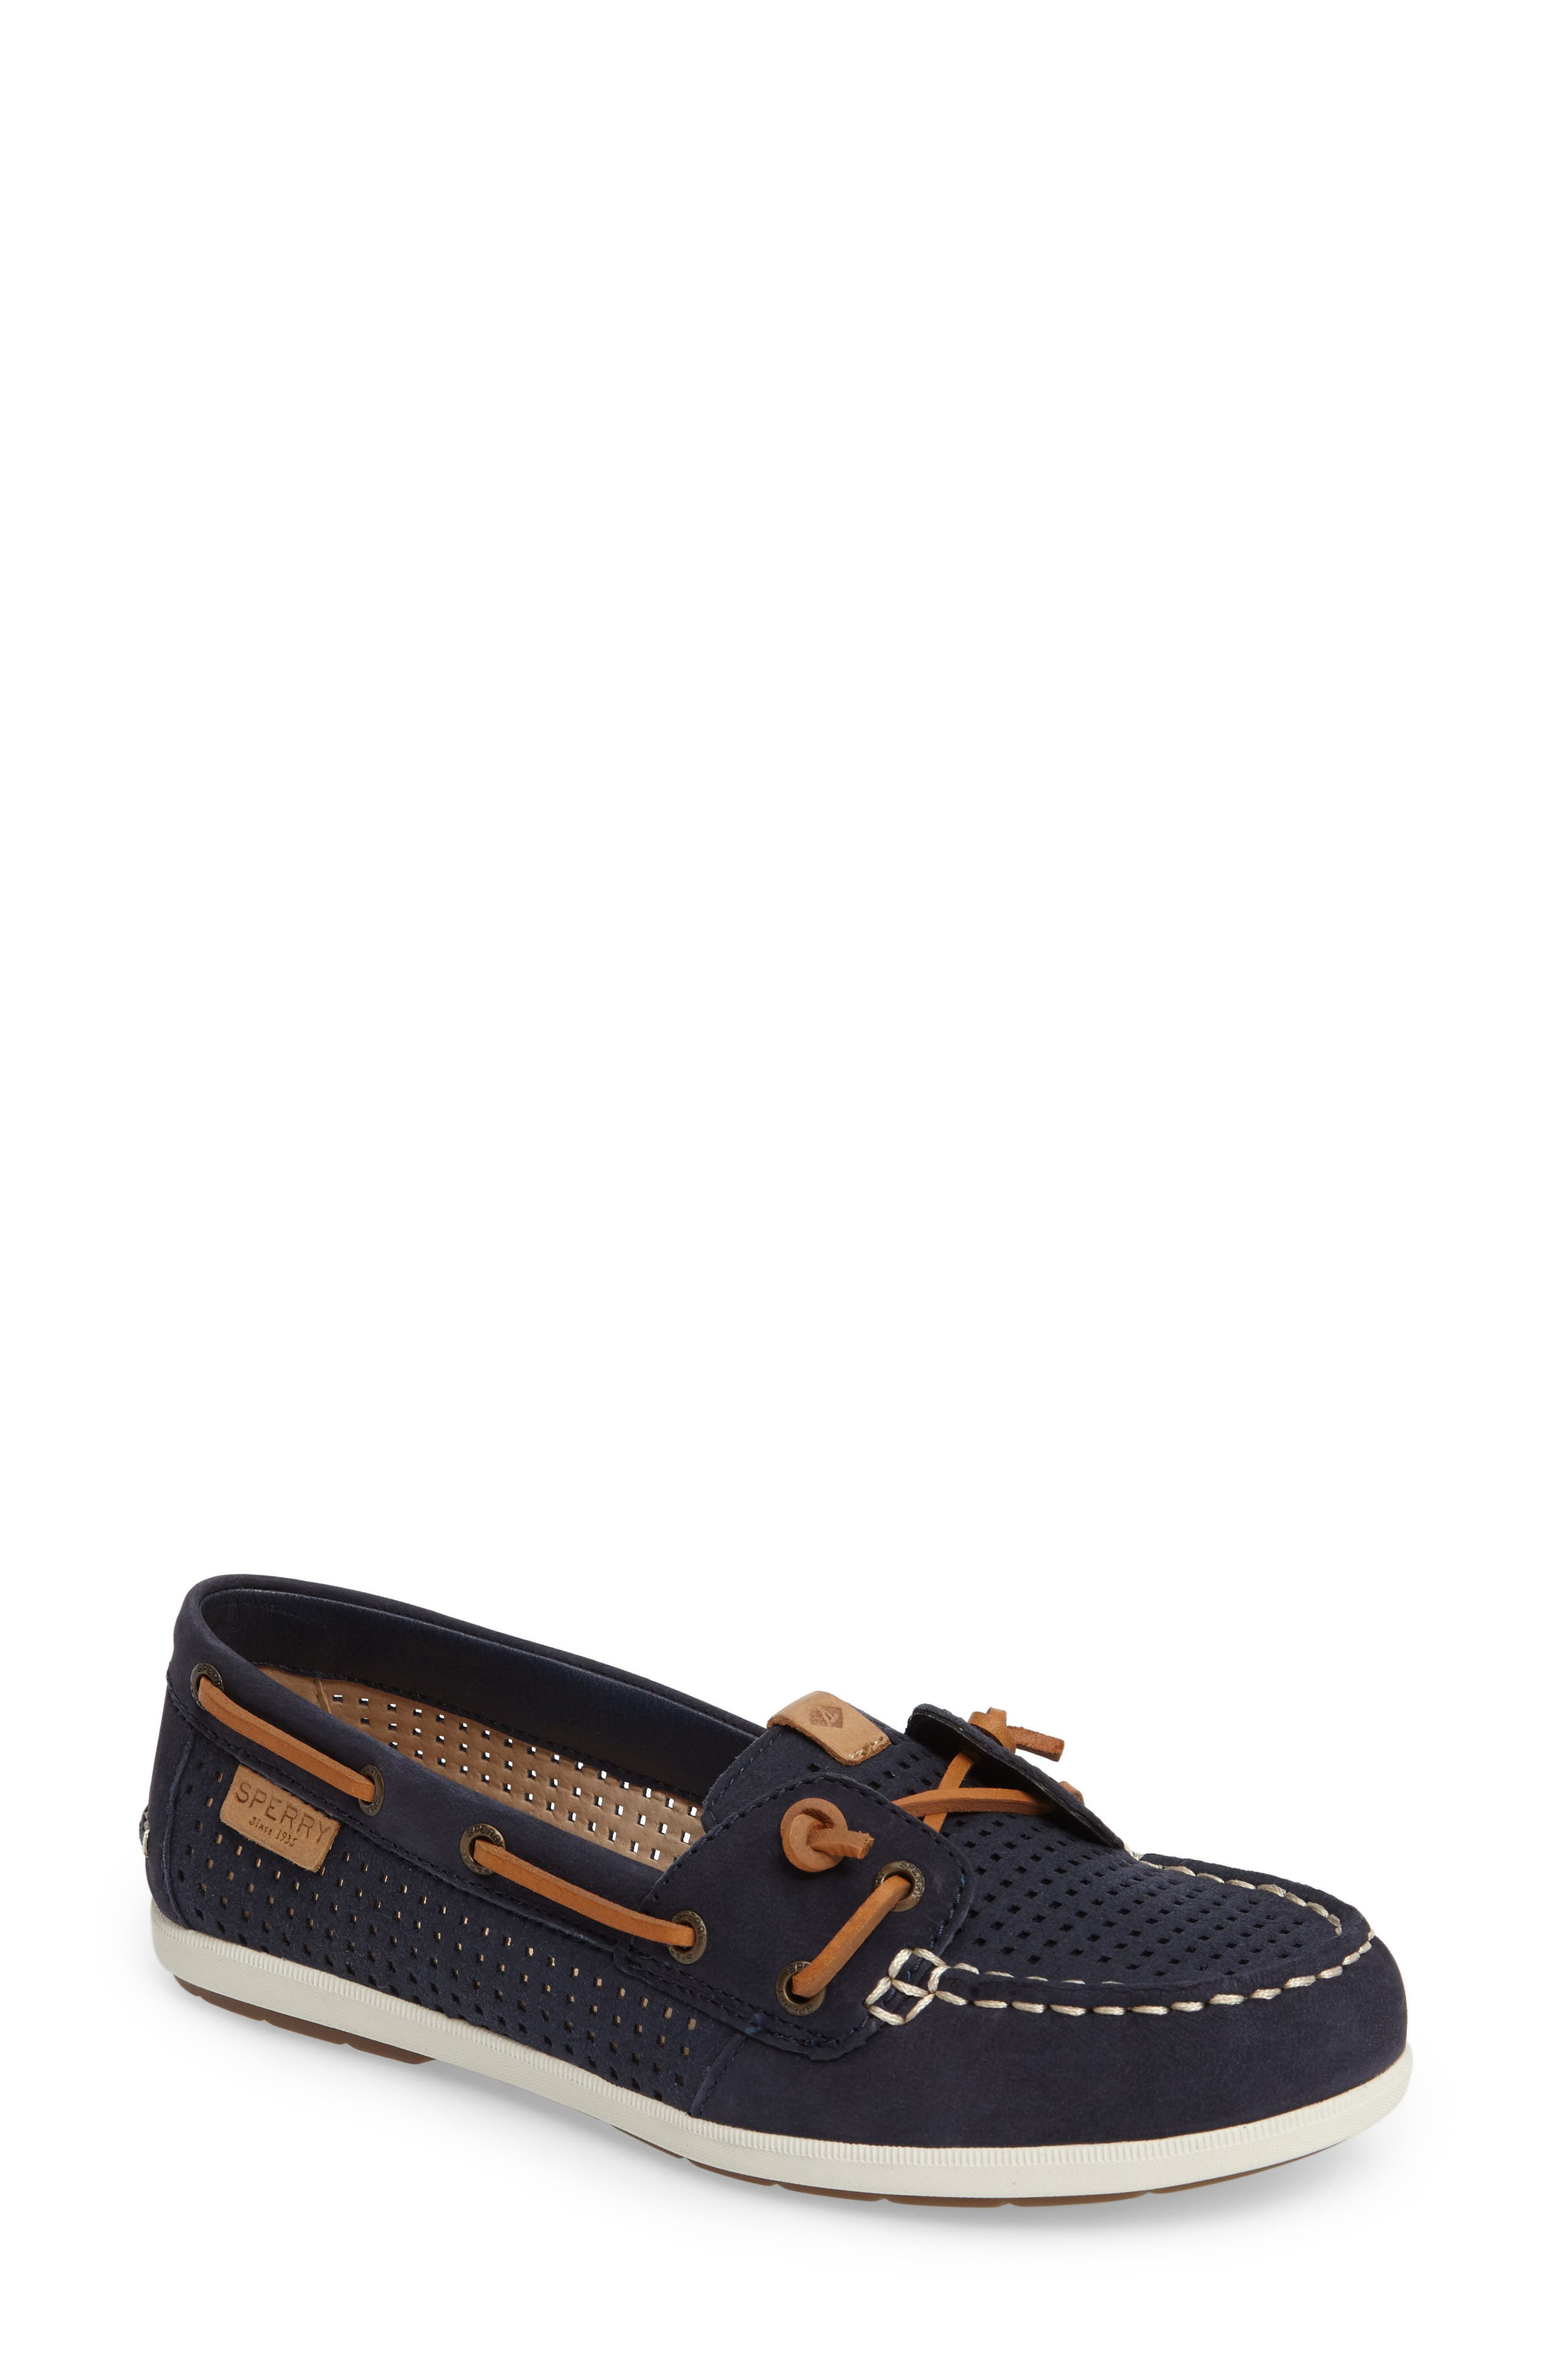 Coil Ivy Boat Shoe,                             Main thumbnail 1, color,                             Navy Leather